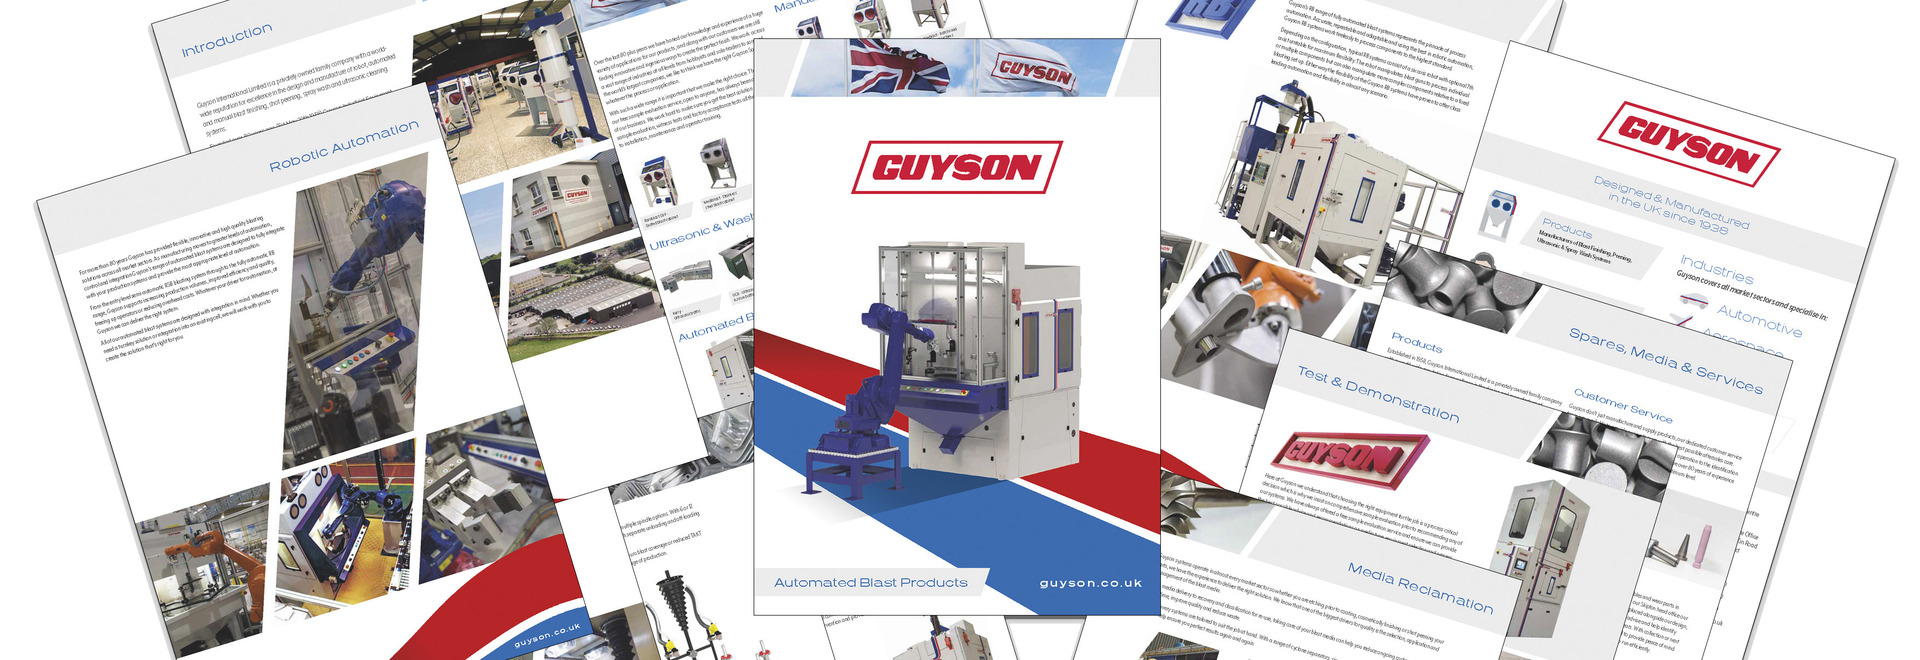 Guyson's new 'Automated Blast Products' brochure